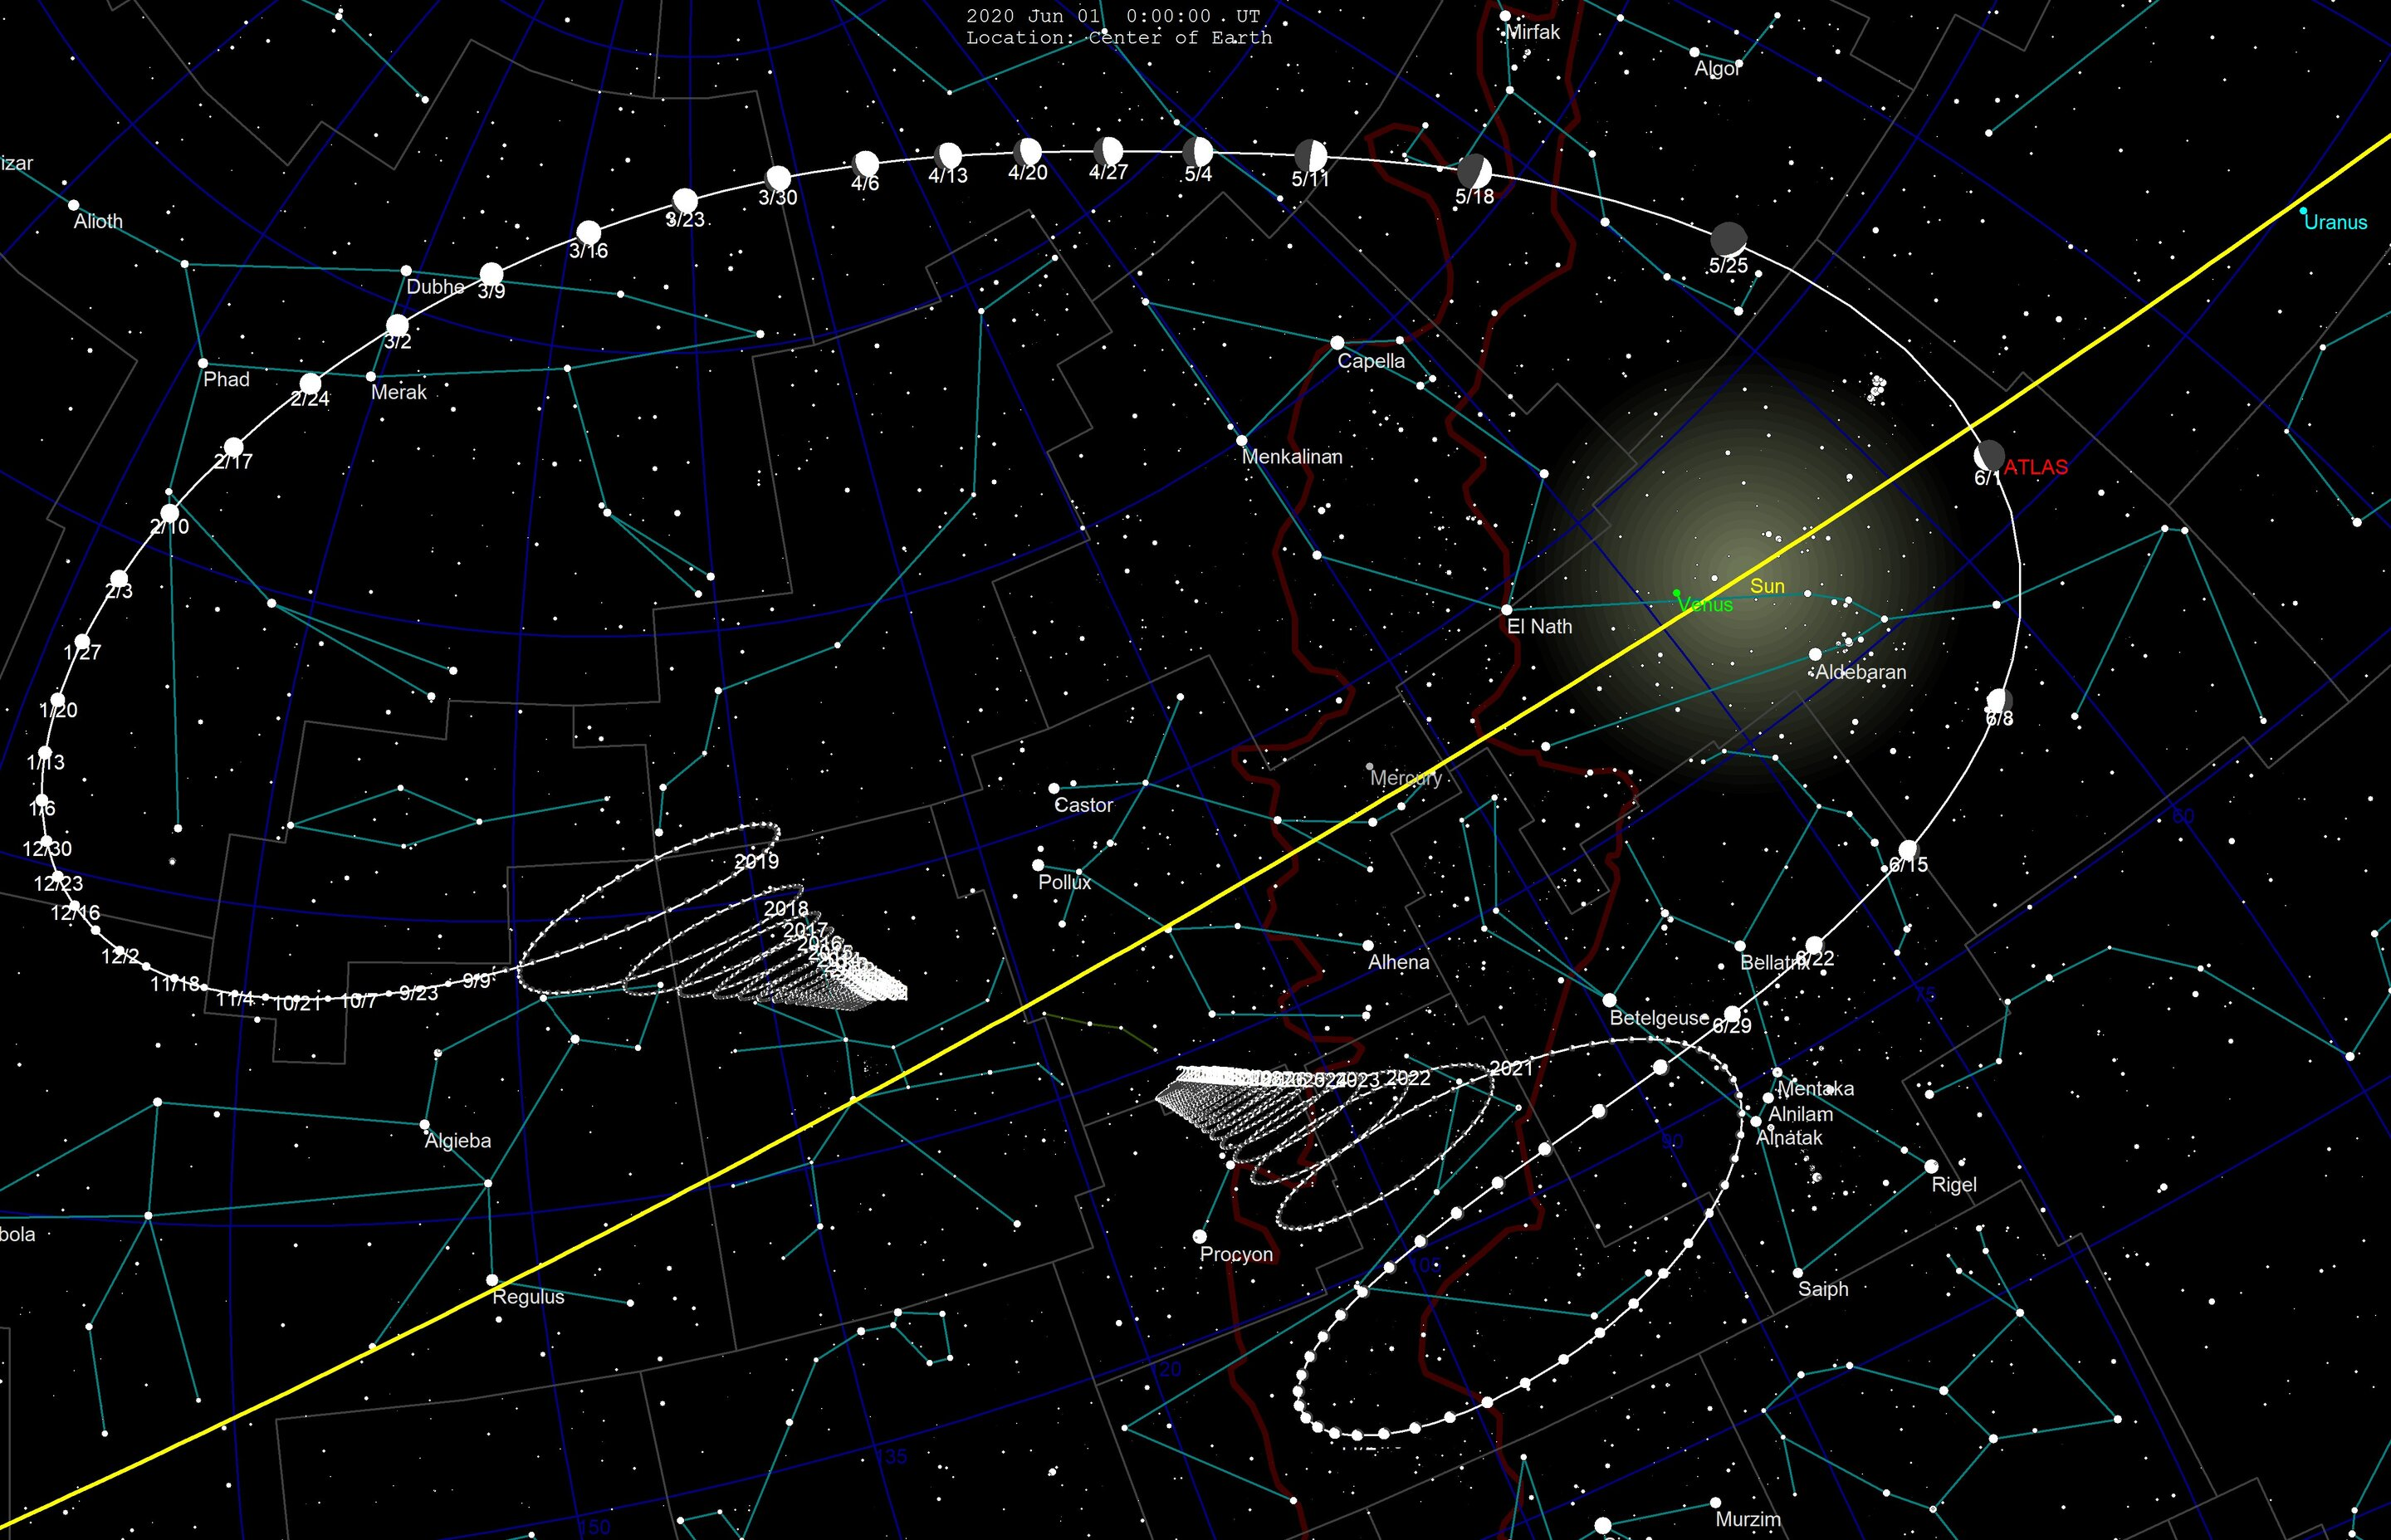 Comet ATLAS may put on quite a show